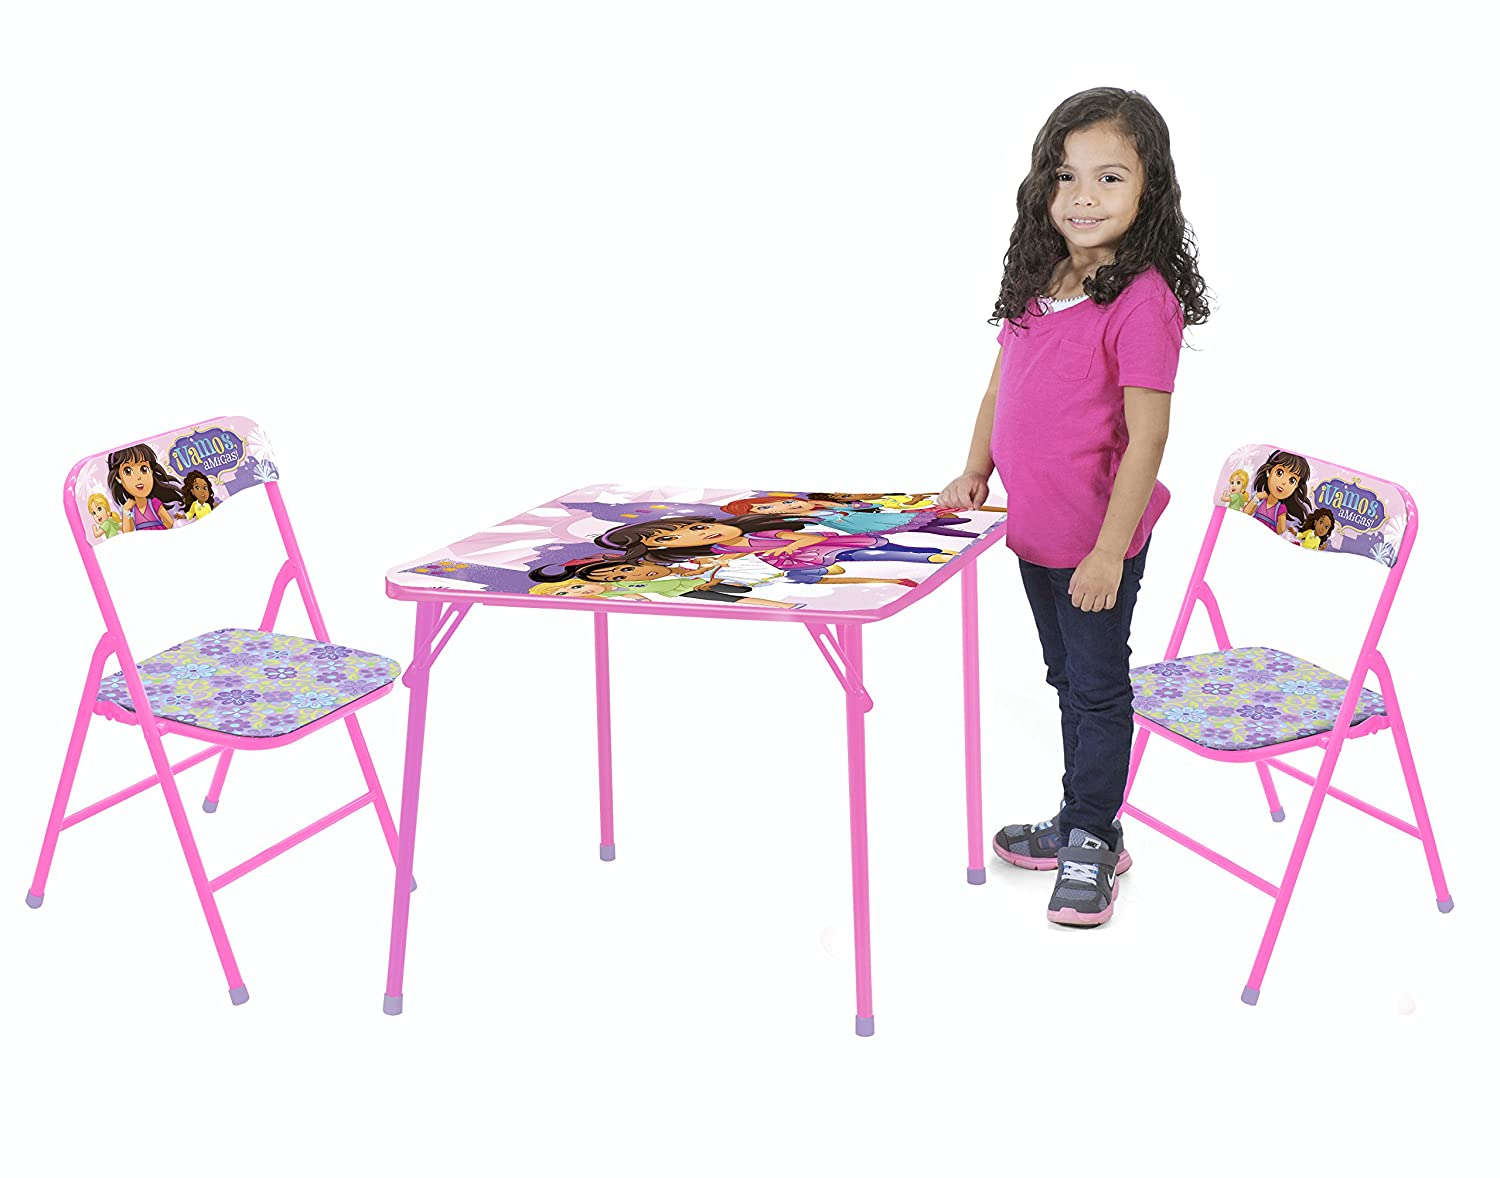 Amazon.com: Nickelodeon Dora and Friends Table and Chair Set (3 ...